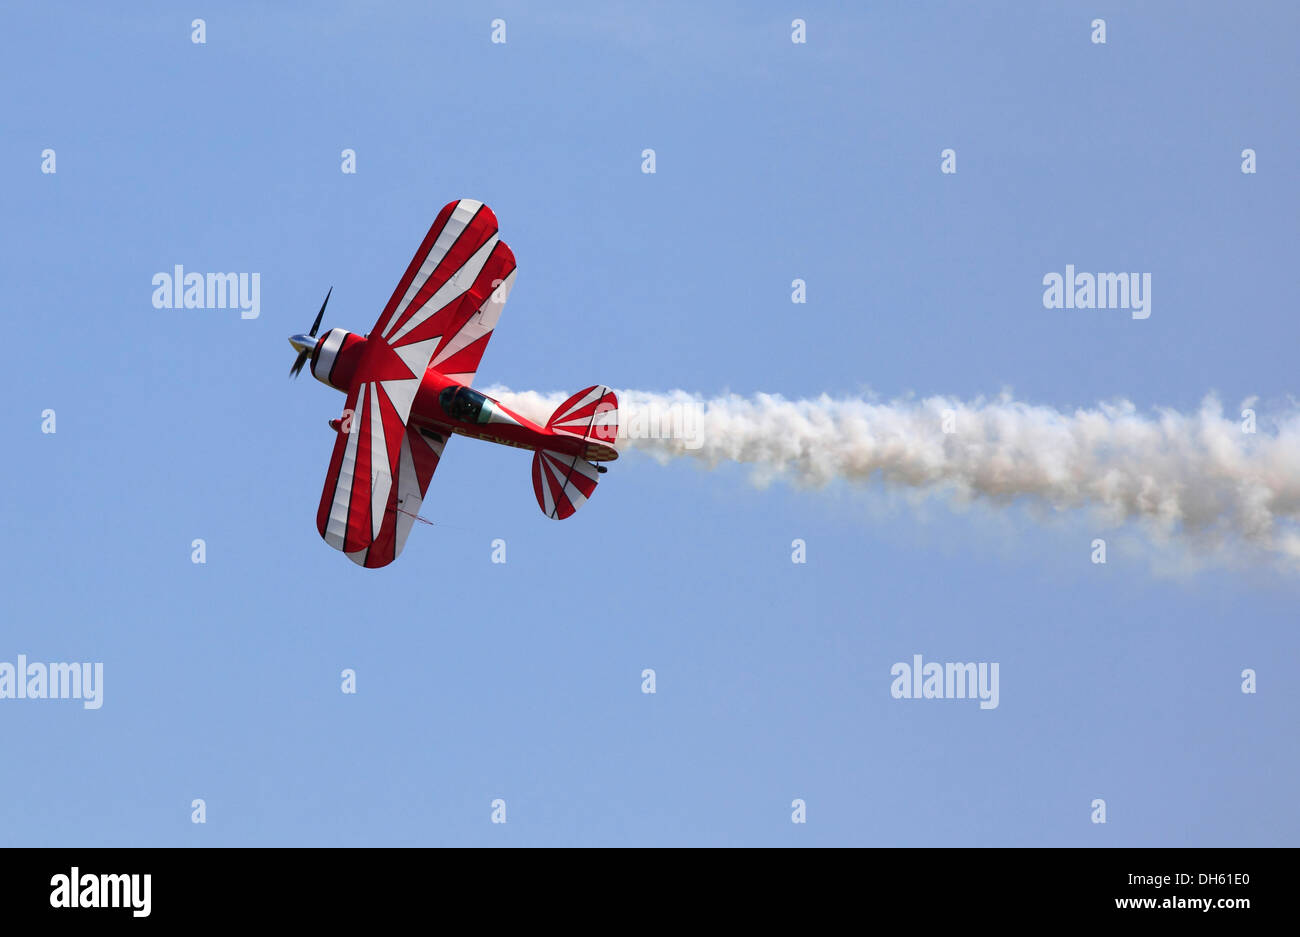 The Pitts S-2S Special Bi-plane performing at Cosford Airshow 2013 Cosford, Shropshire, England, Europe - Stock Image